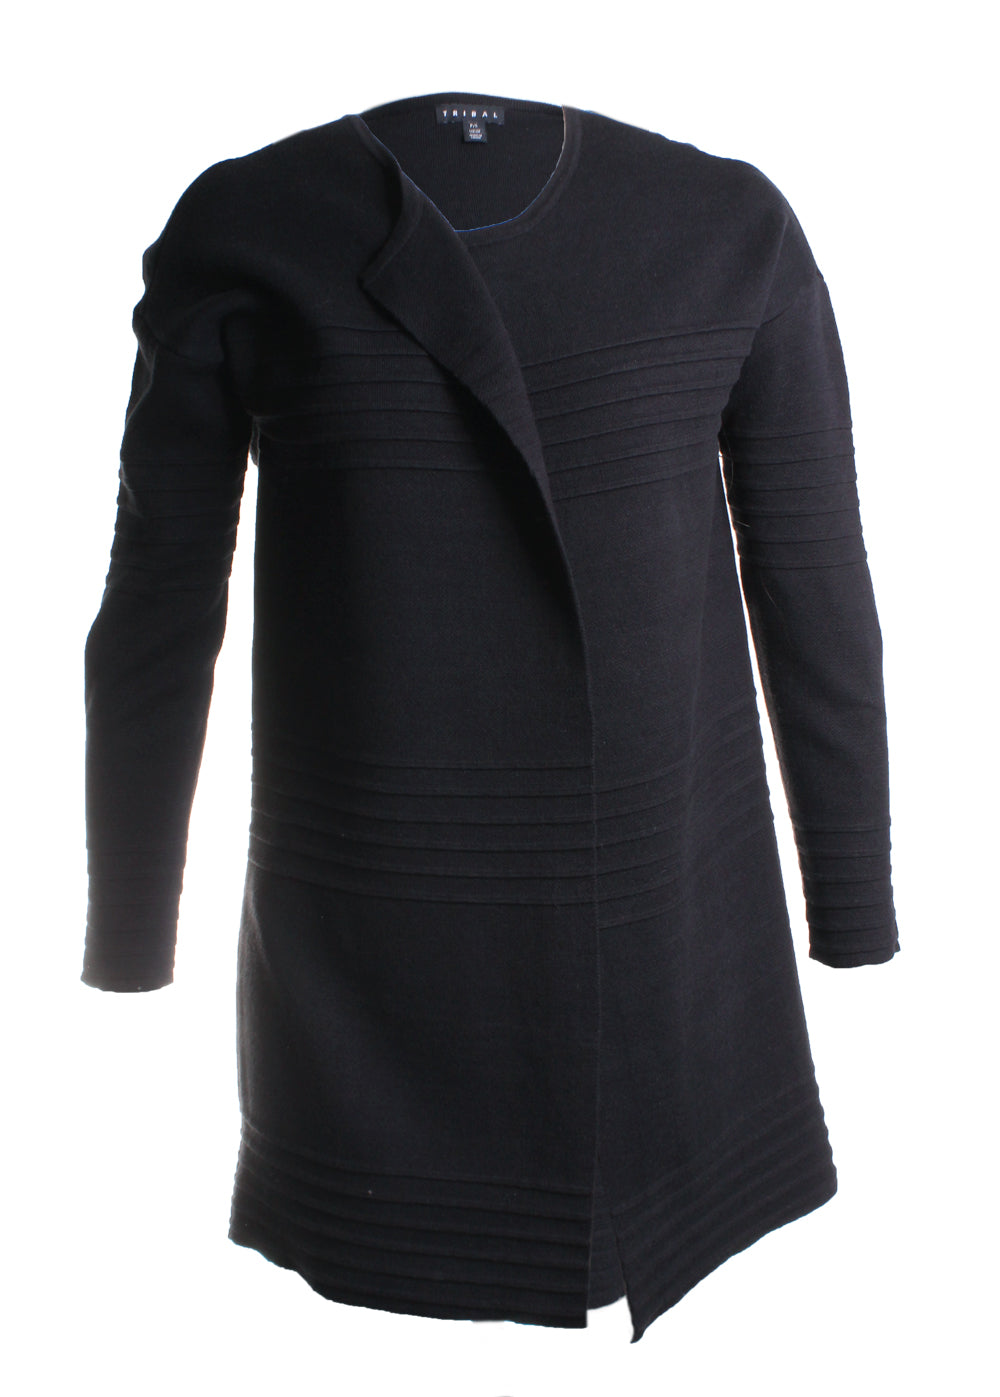 Ribbed Cardigan Sweater in Black